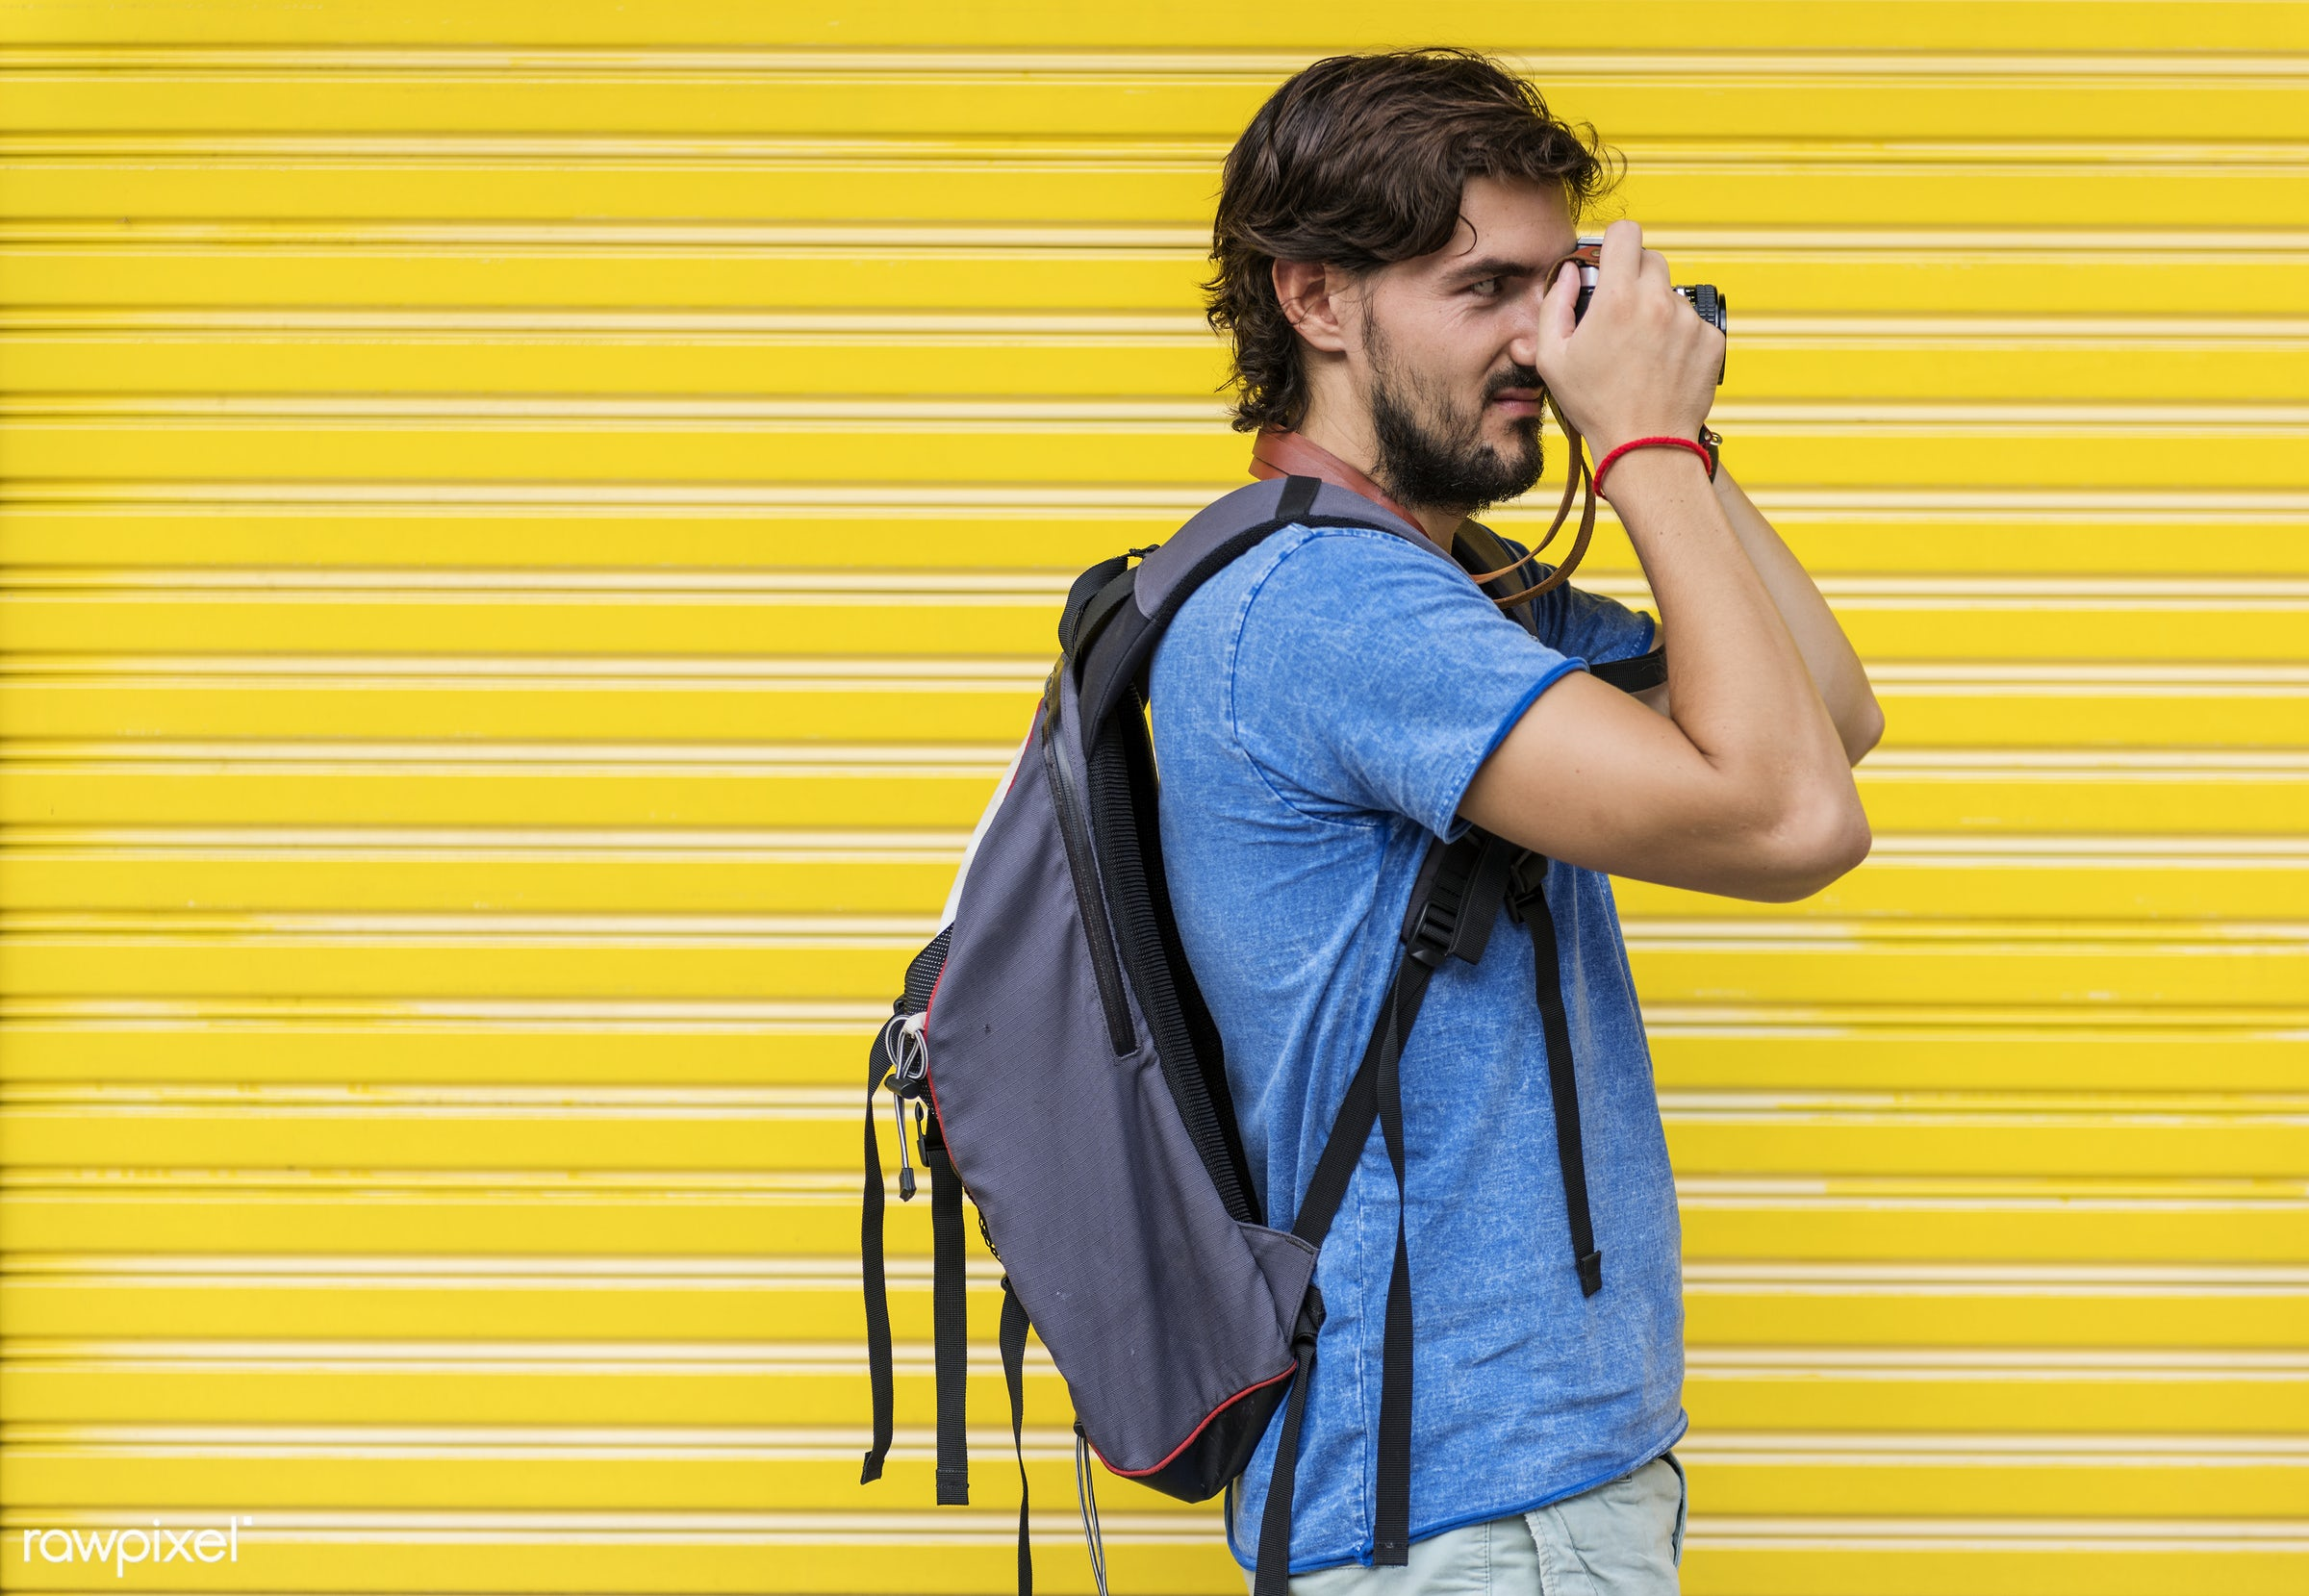 Man with a camera taking a photo - yellow, adult, backpack, backpacker, backpackers, camera, guy, holiday, male, man,...